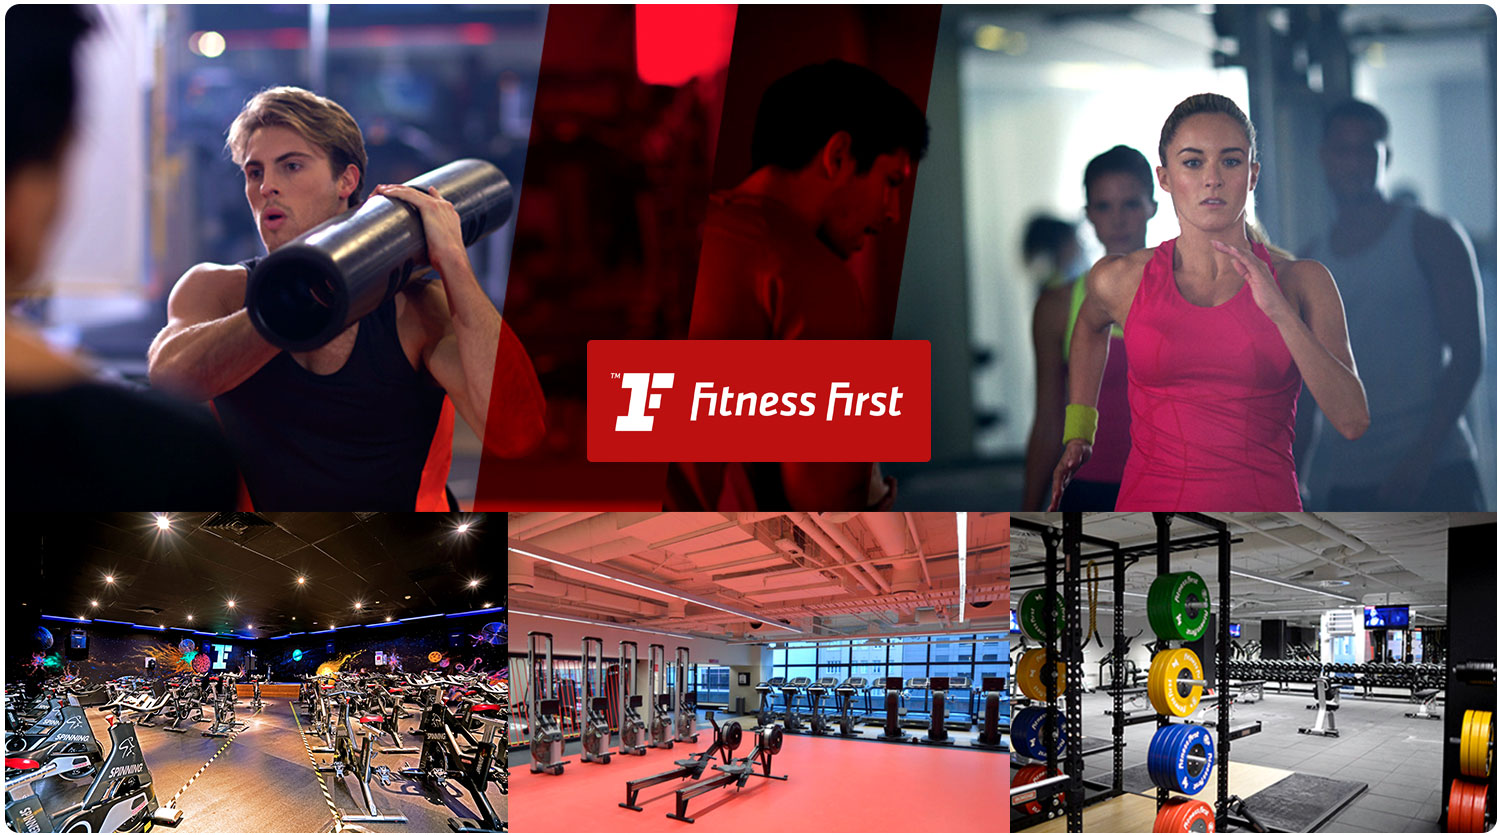 Start your Fitness Journey with Fitness First with only $14.95 for 14 days at Fitness First Bondi Junction NSW. Experience our first class gym and freestyle classes inc. Pilates, Yoga, HIIT, Les Mills and more. Take the first step with Fitness First Bondi Junction NSW.